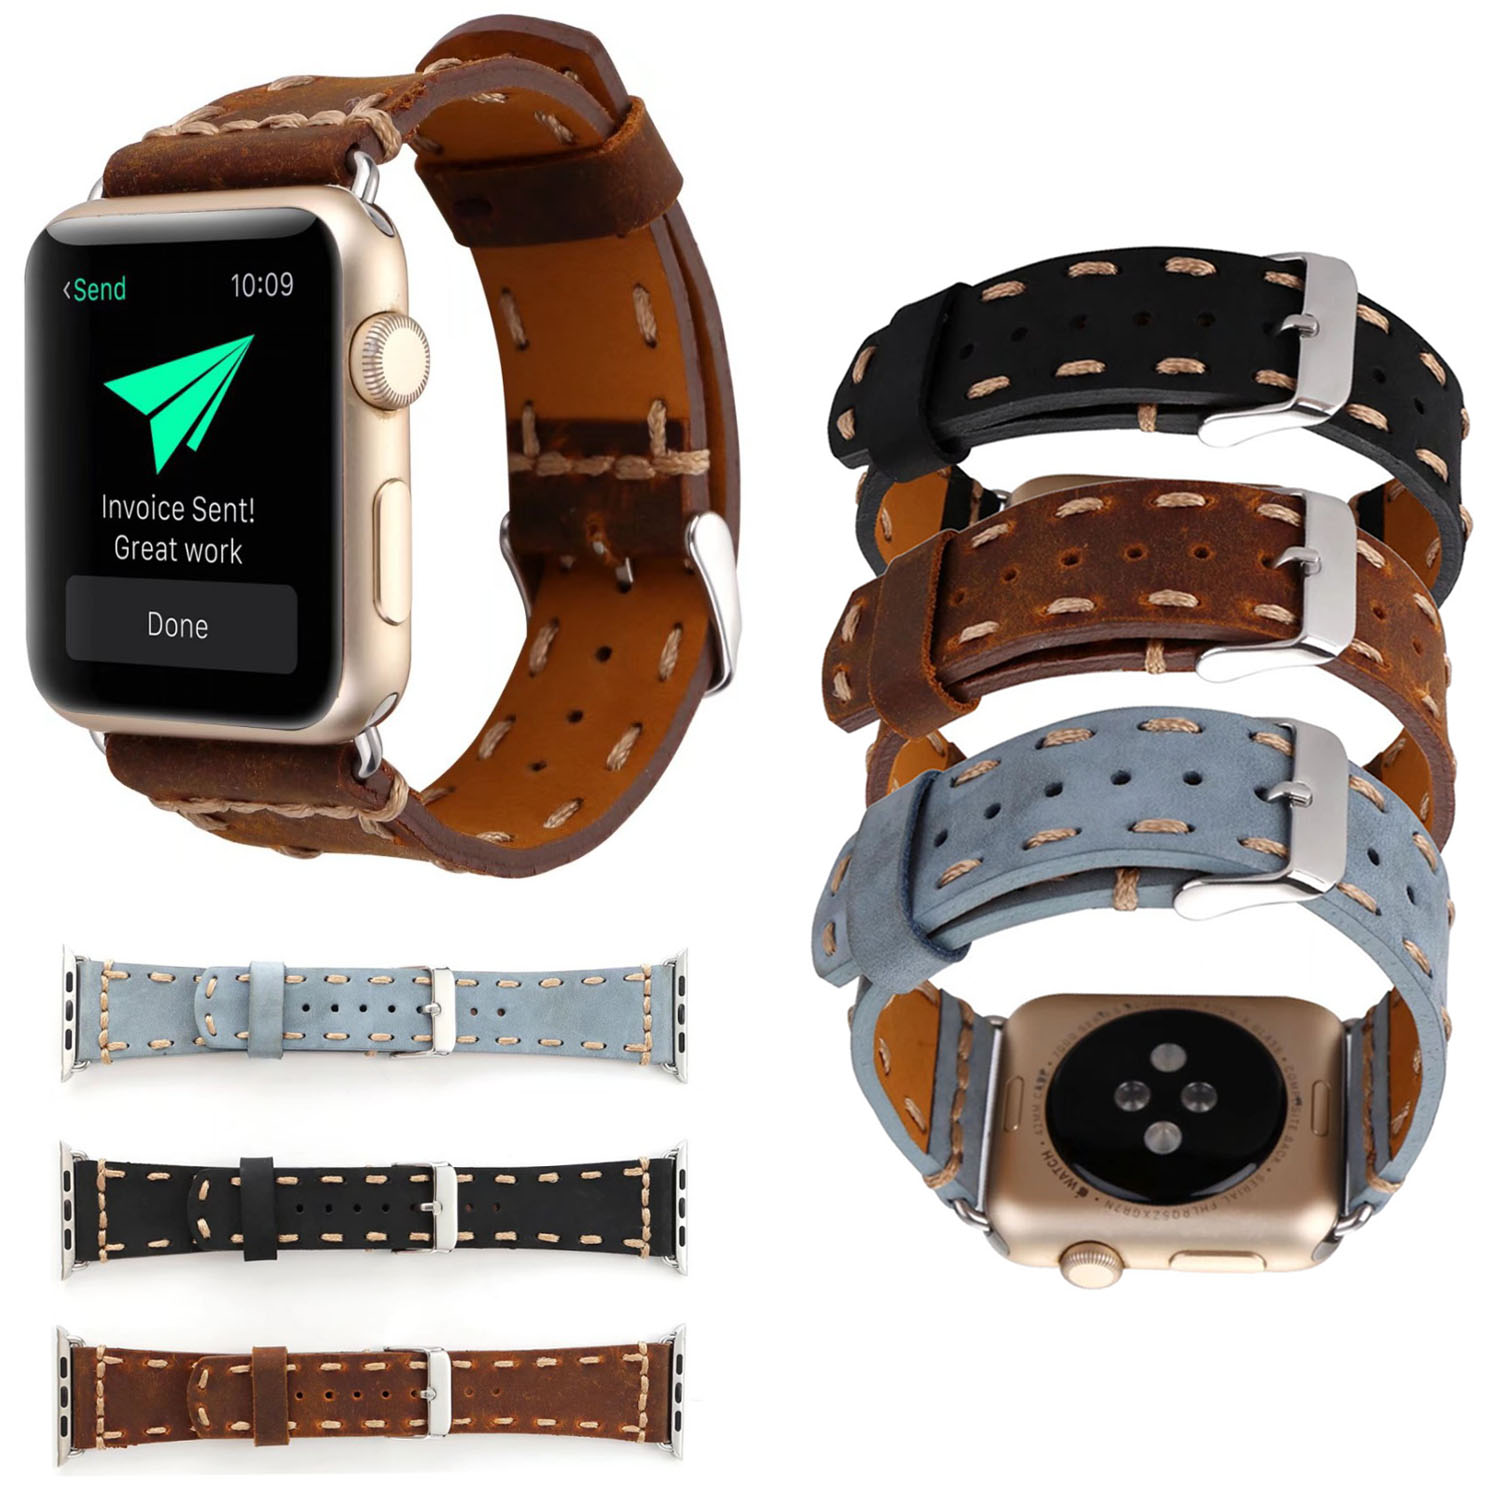 Stitching Leather Watch Bracelet For Apple Watch Band 42mm 38mm iWatch Watch Accessories For Apple Watch Strap Watchband eastar genuine leather bracelet for apple watch band 42mm 38mm iwatch watch accessories for apple watch strap watchband